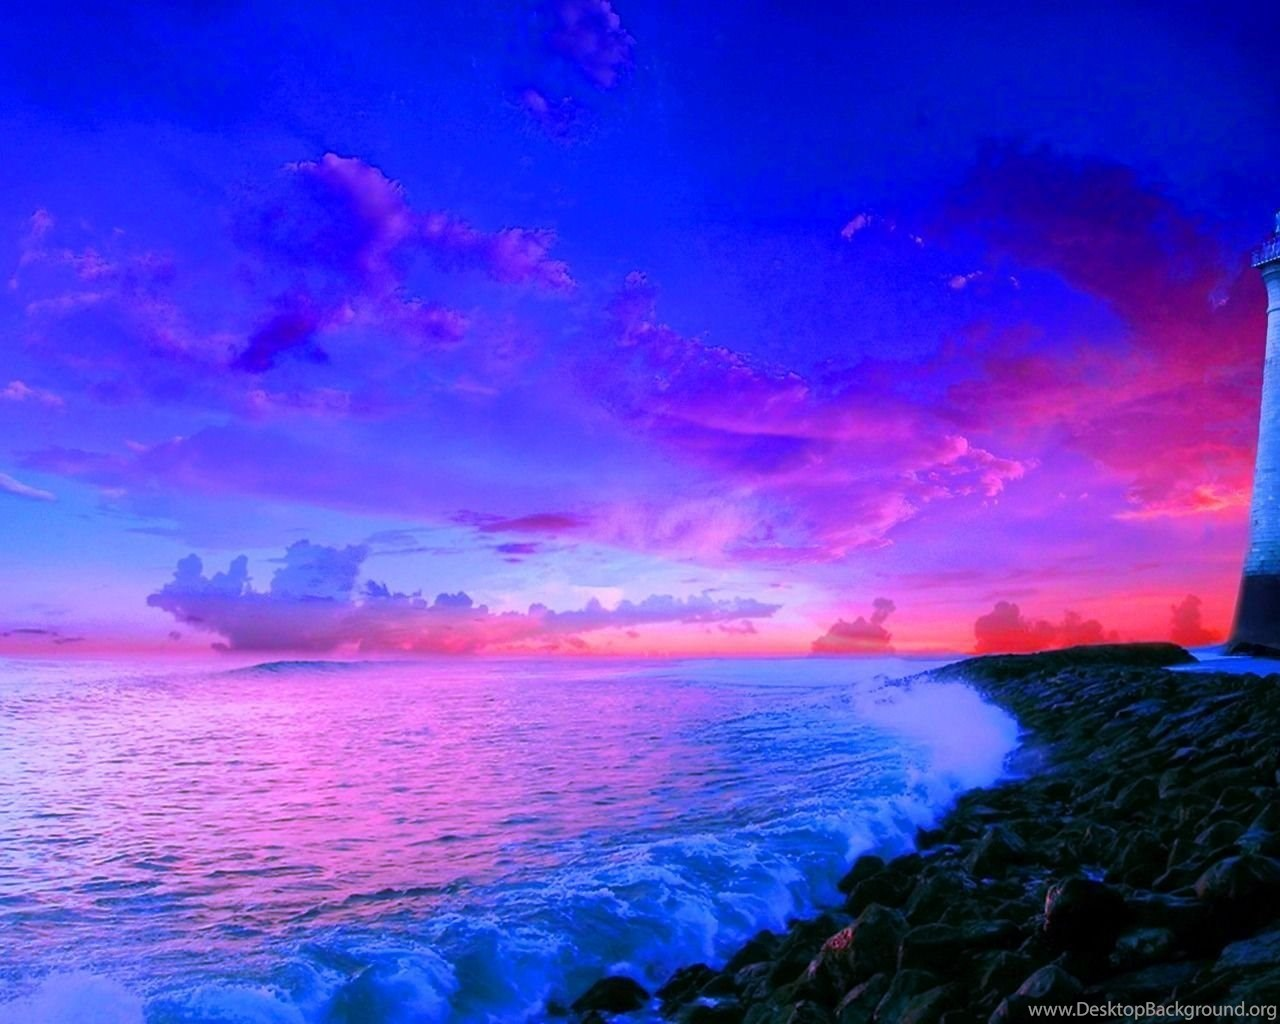 New Ipad Mini 1024 1024 Hd Wallpapers 100 Images Updated: Sea Sky Desktop Wallpapers , New Wallpapers, New